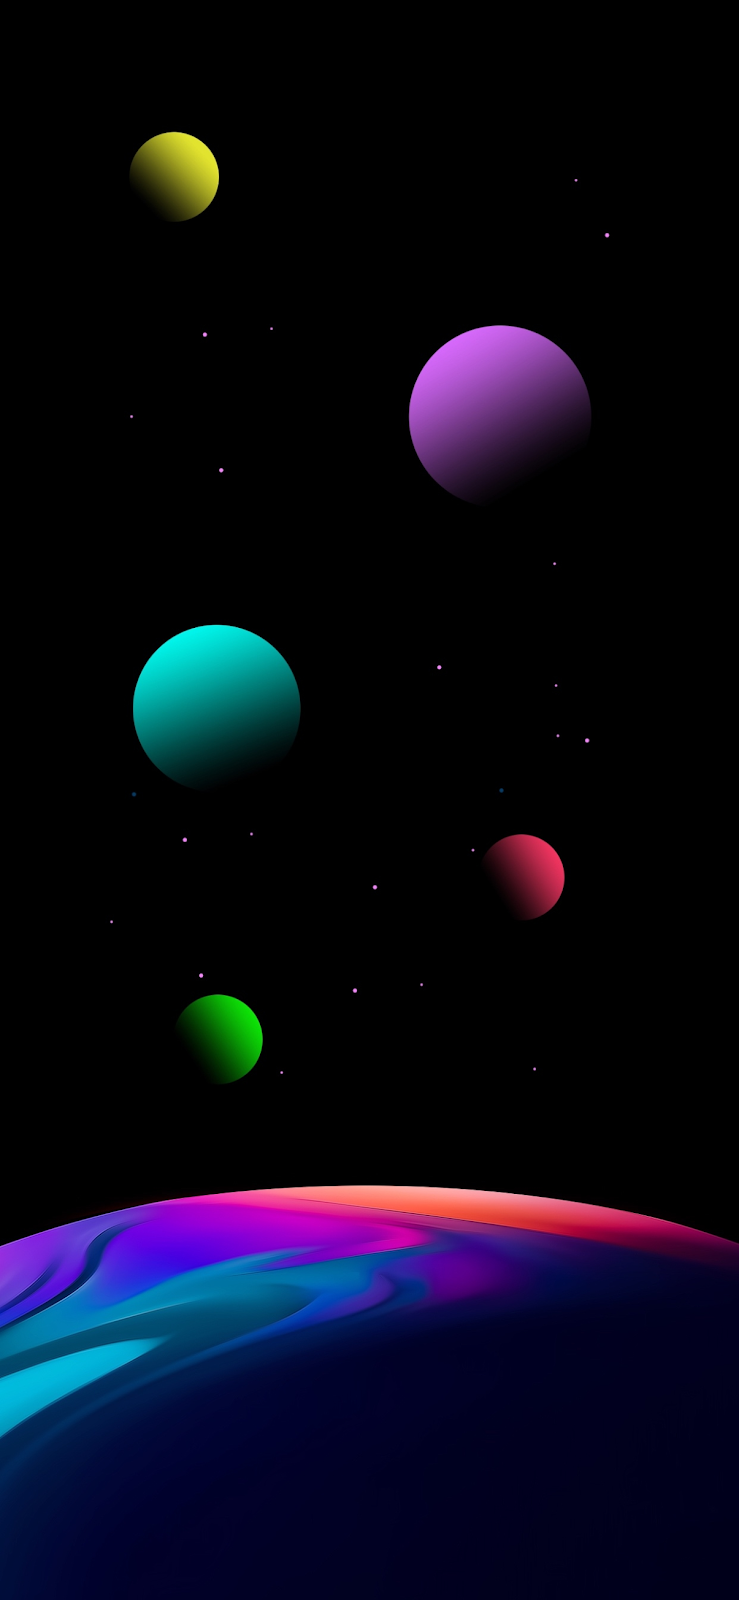 Planets 1 by AR72014